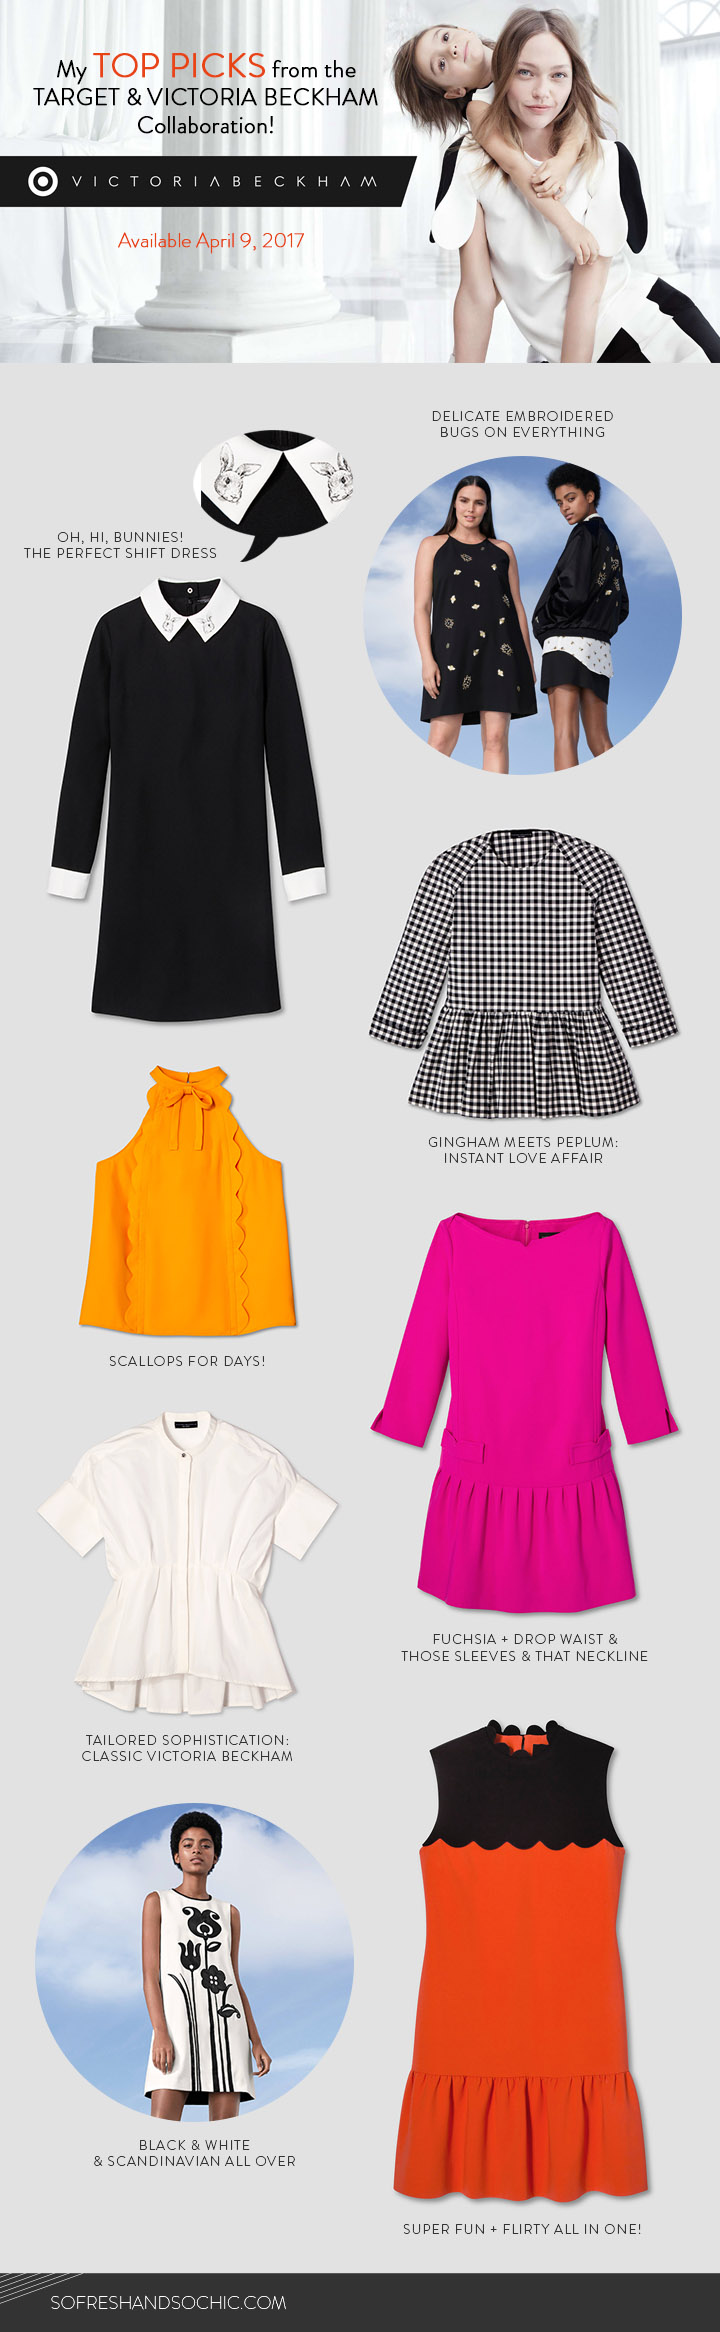 So Fresh & So Chic // My Top Picks from the Target & Victoria Beckham Collaboration! #target #targetstyle #target @targetstyle #sofreshandsochic